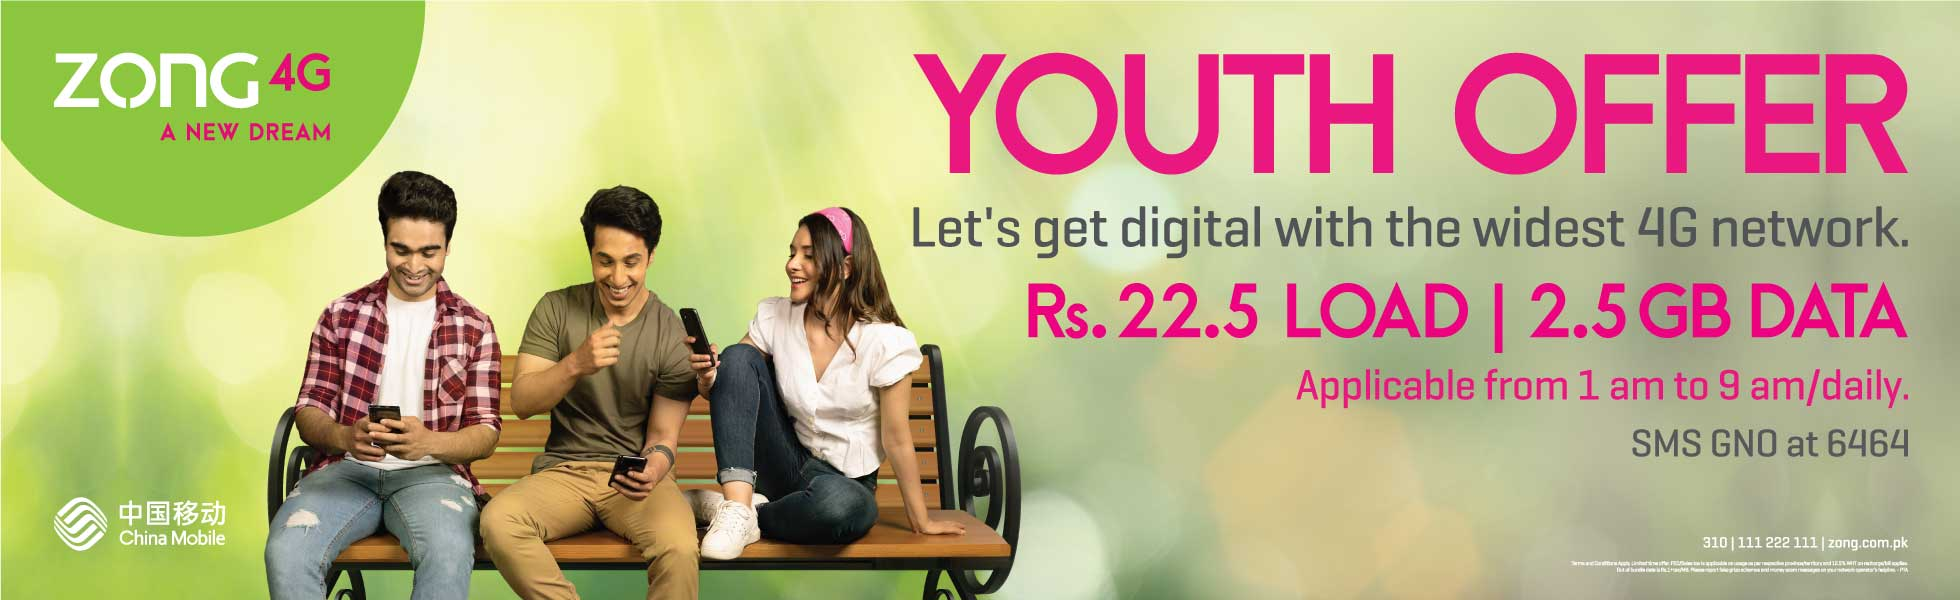 Zong Youth Offer Code 2021 Night Internet Package